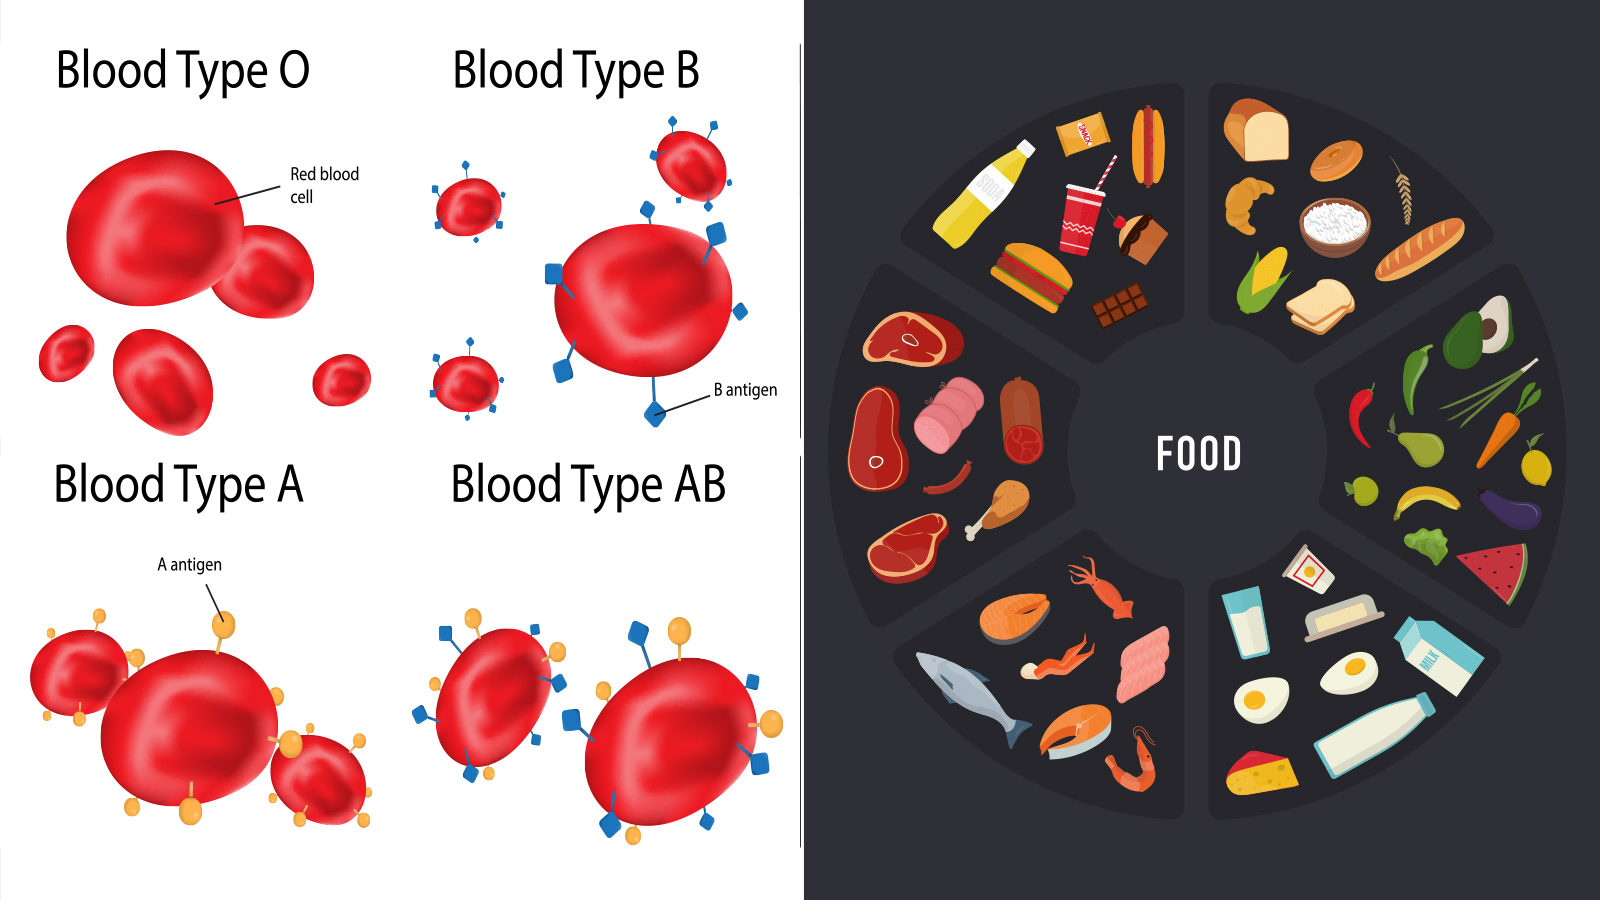 Science Explains What Foods to Eat, According to Your Blood Type